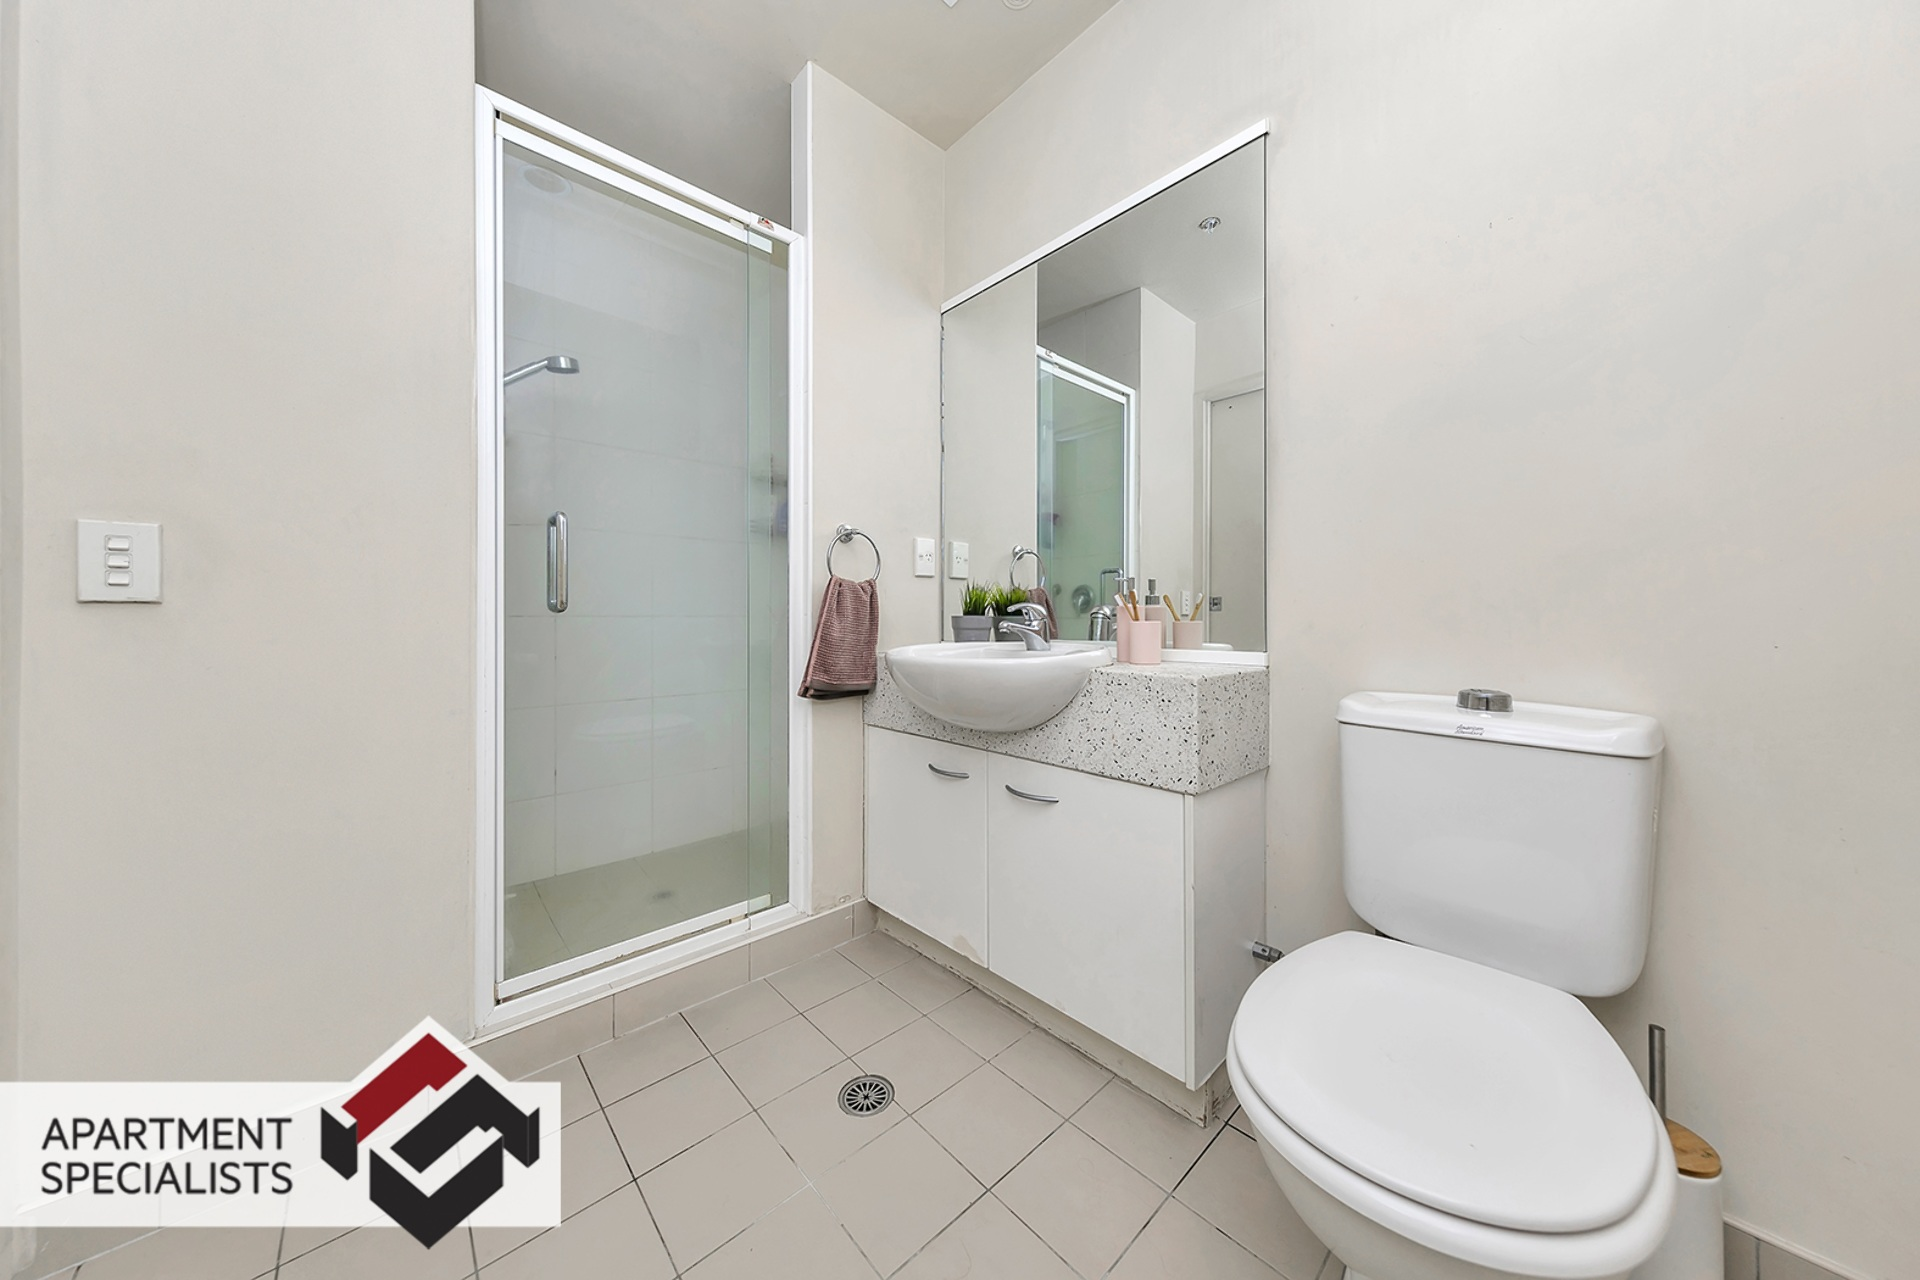 9 | 5 Charlotte Street, Eden Terrace | Apartment Specialists